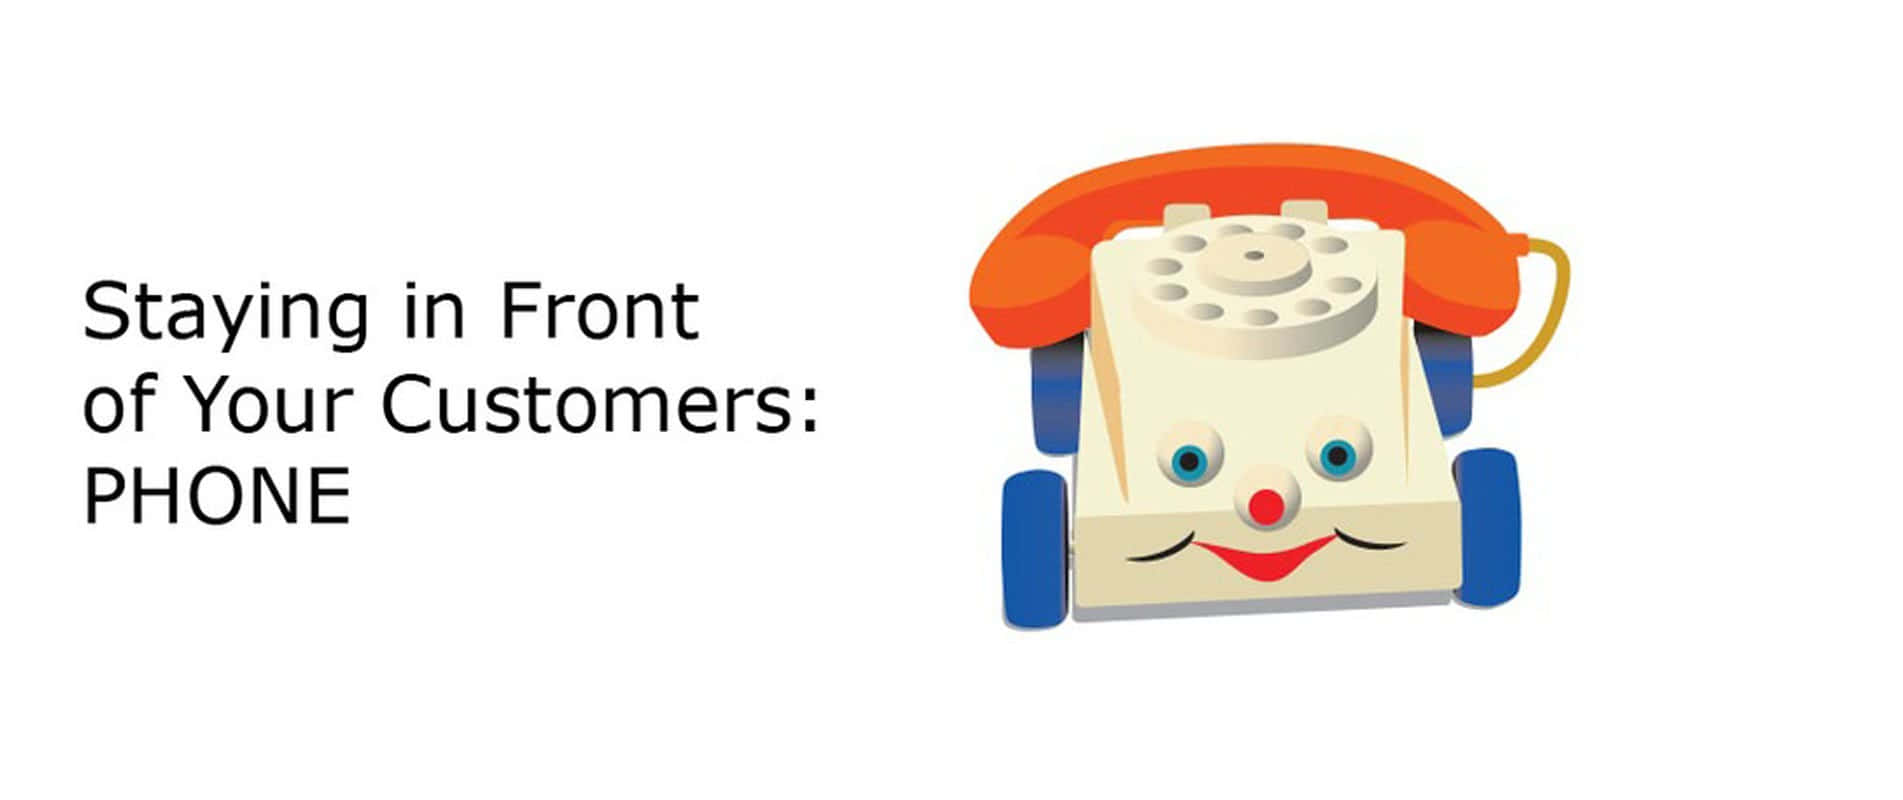 CEU|Staying in Front of Your Customers: Phone